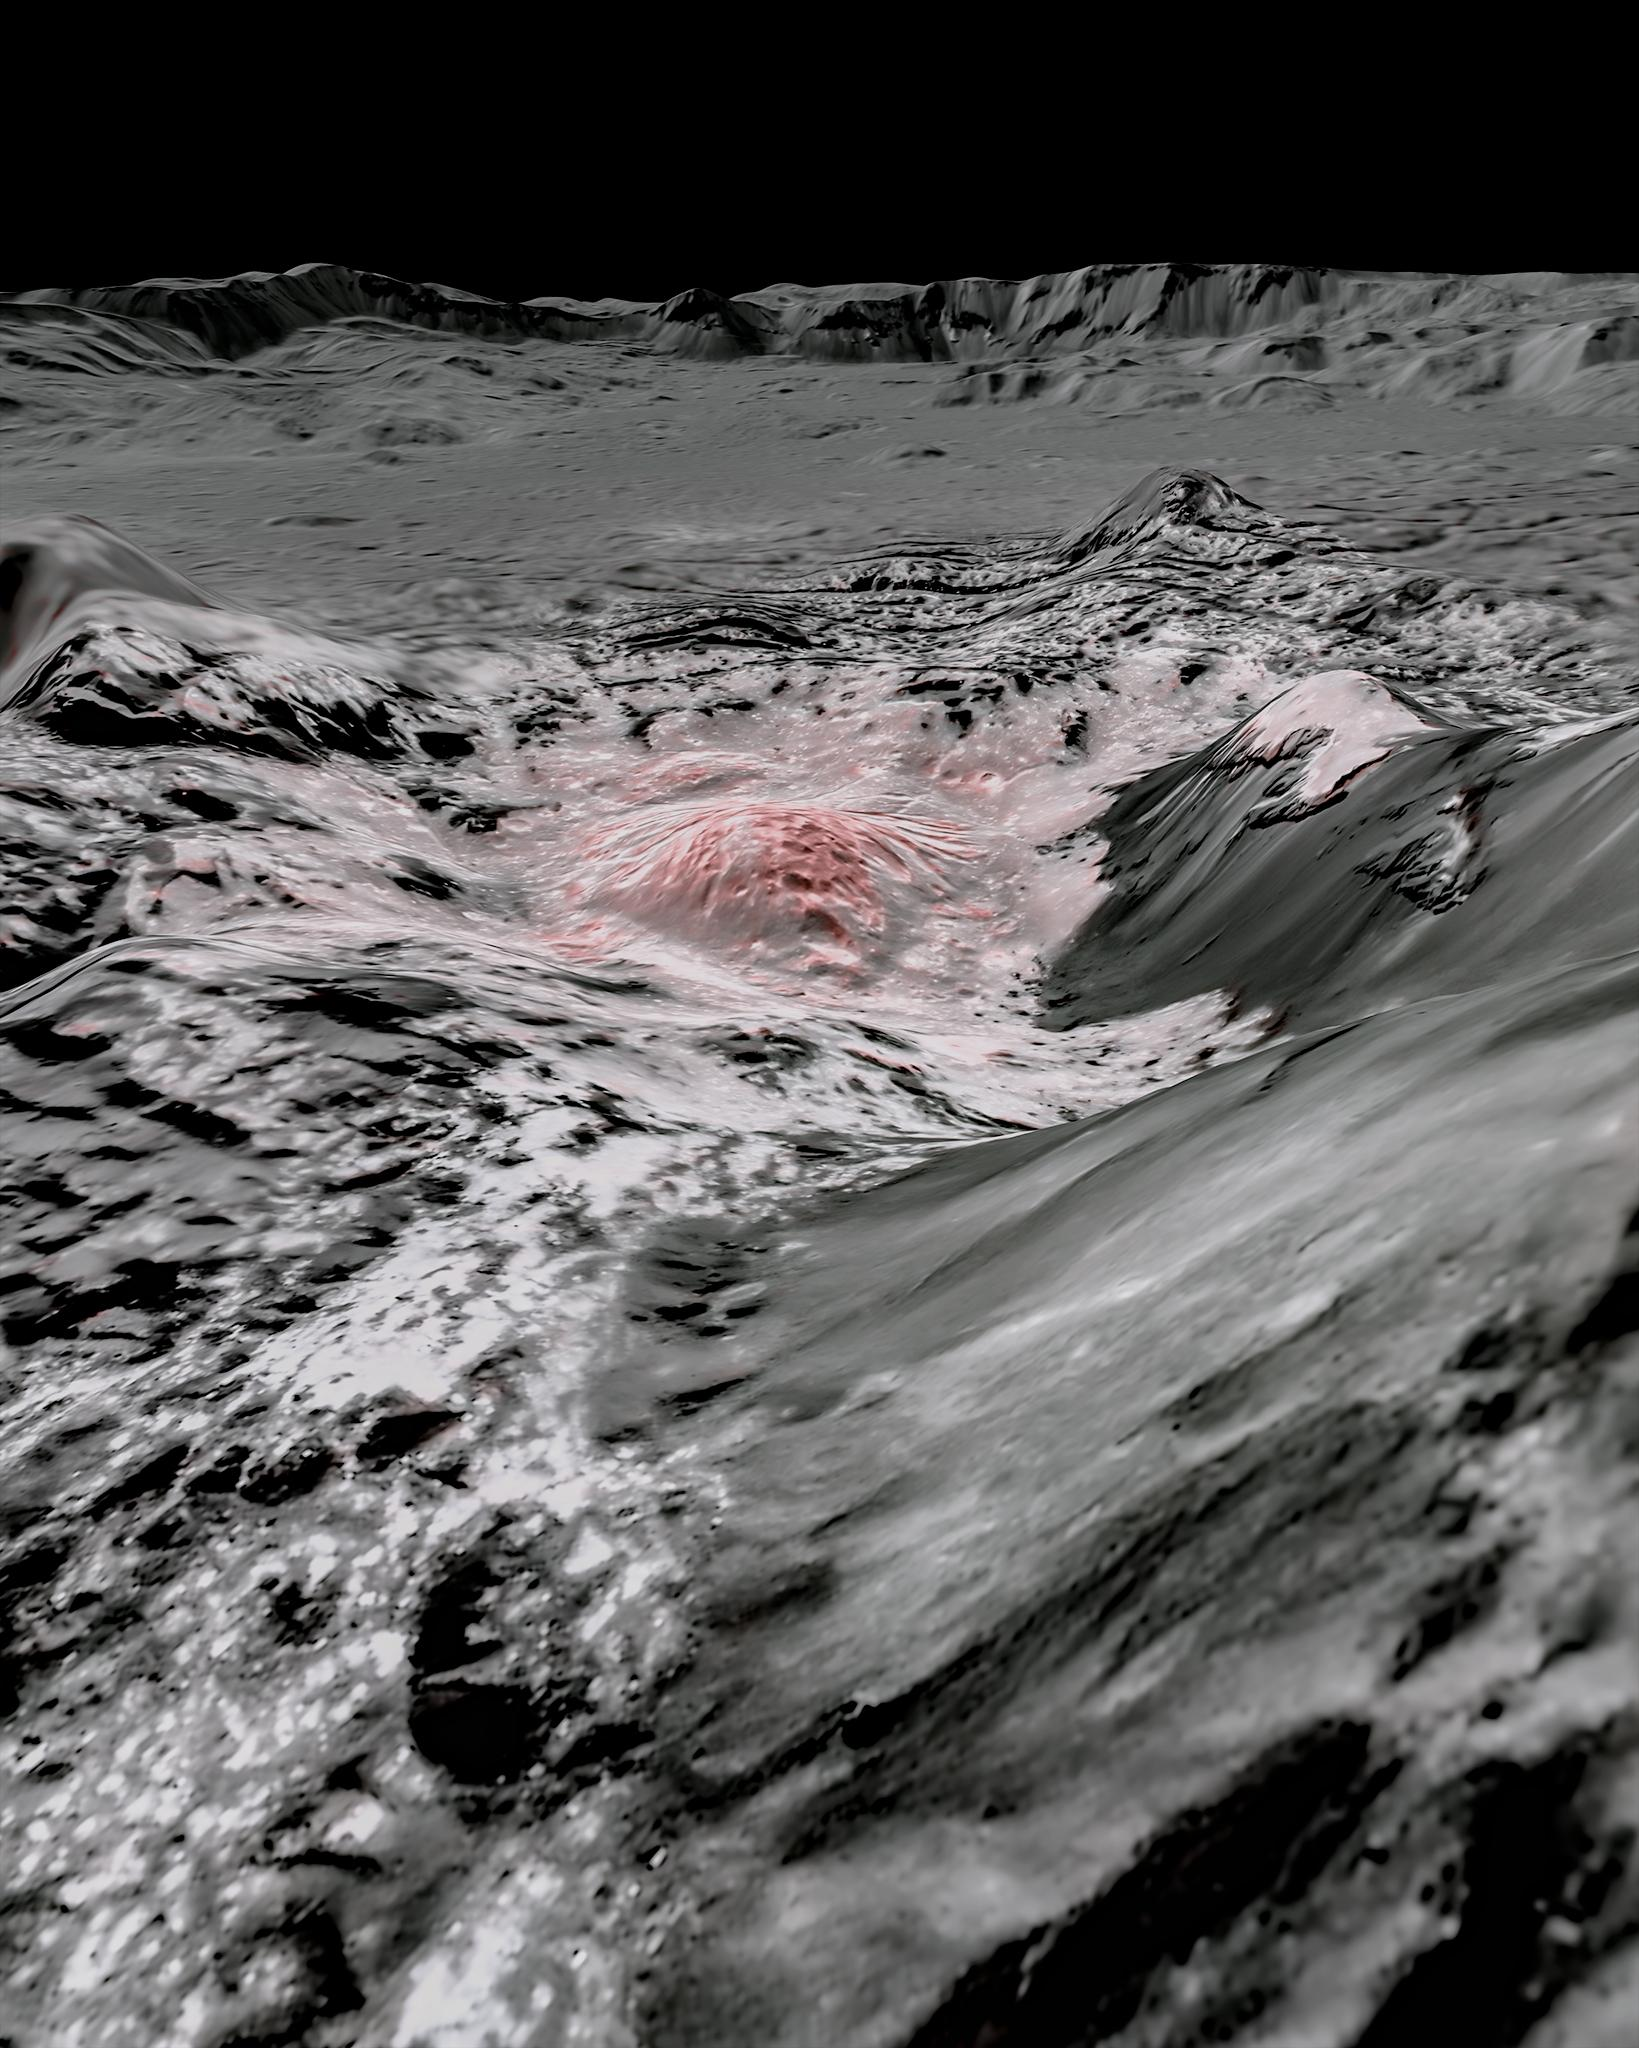 Steep hills in the basin of a crater are shown in black and white with a speckled trail of white leading to a white and pink mound at the center of the image.